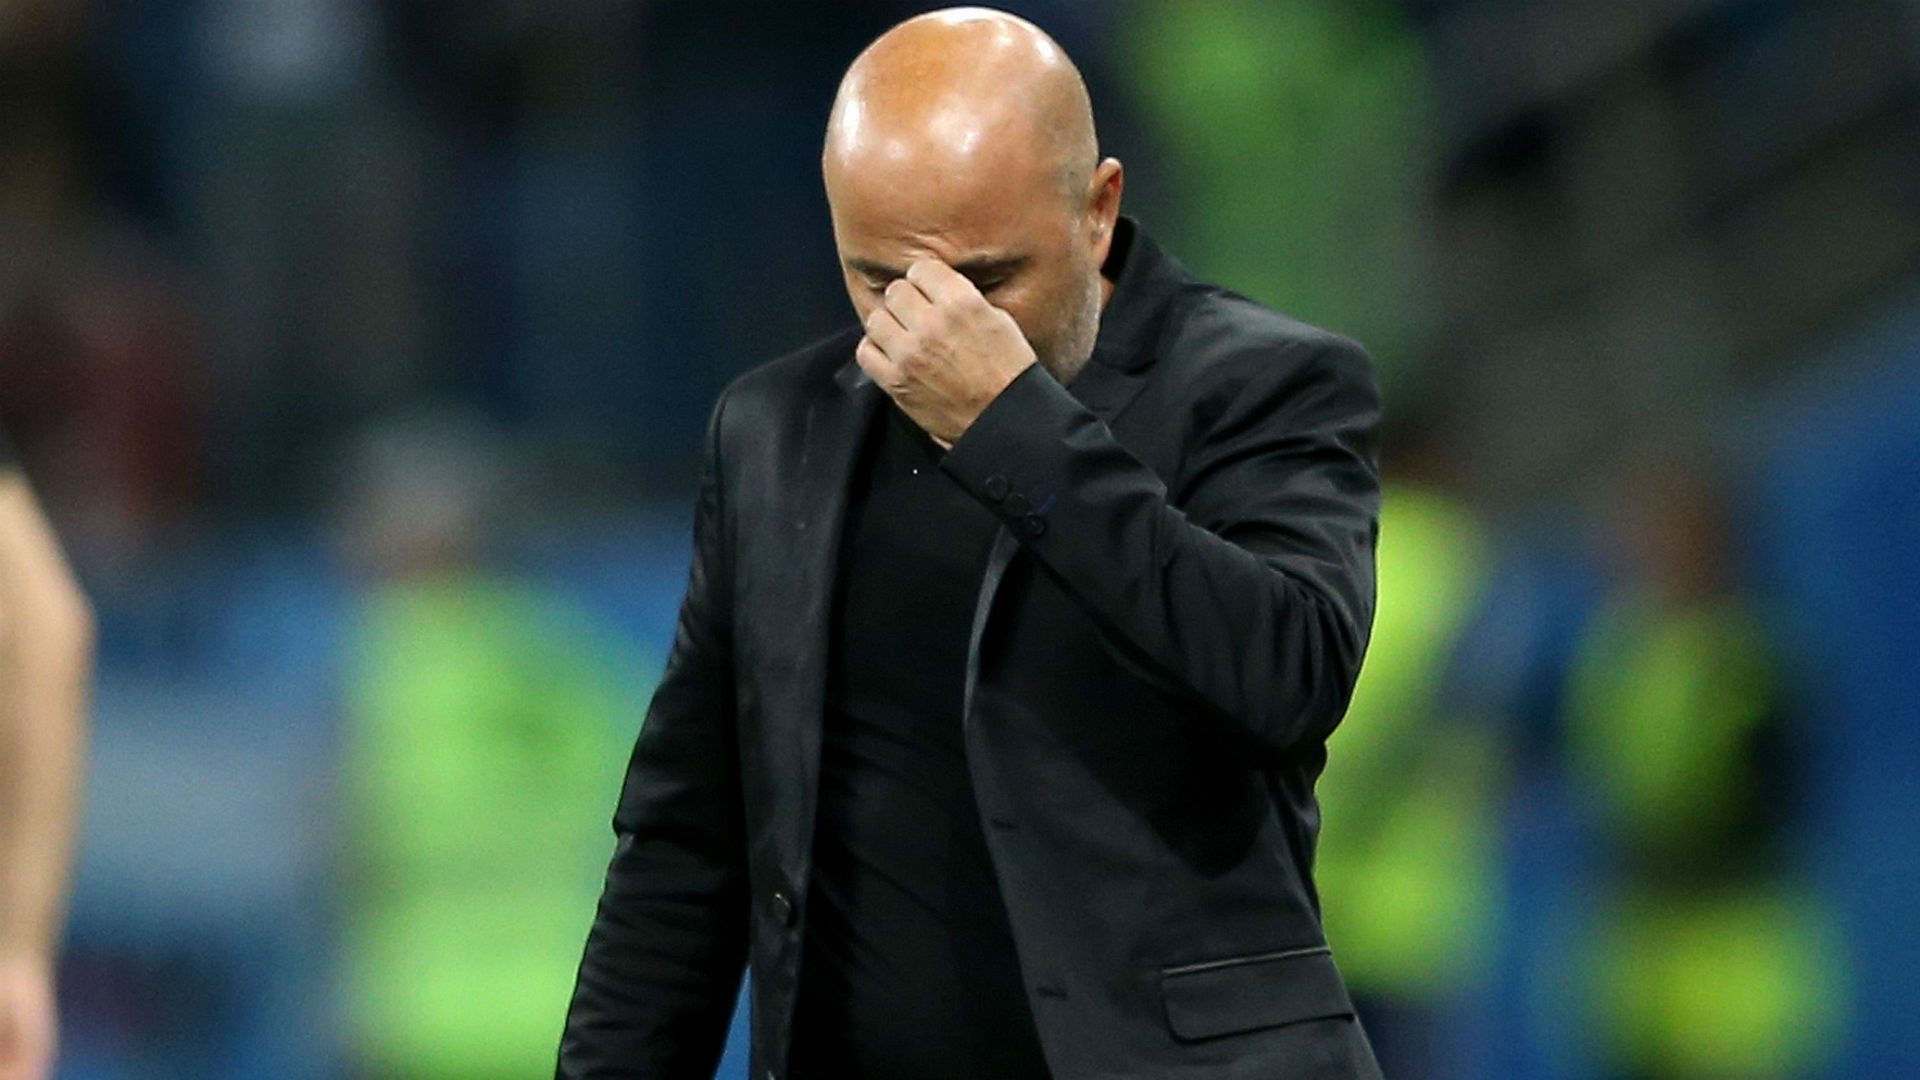 Argentina face five finals, insists defiant coach Sampaoli